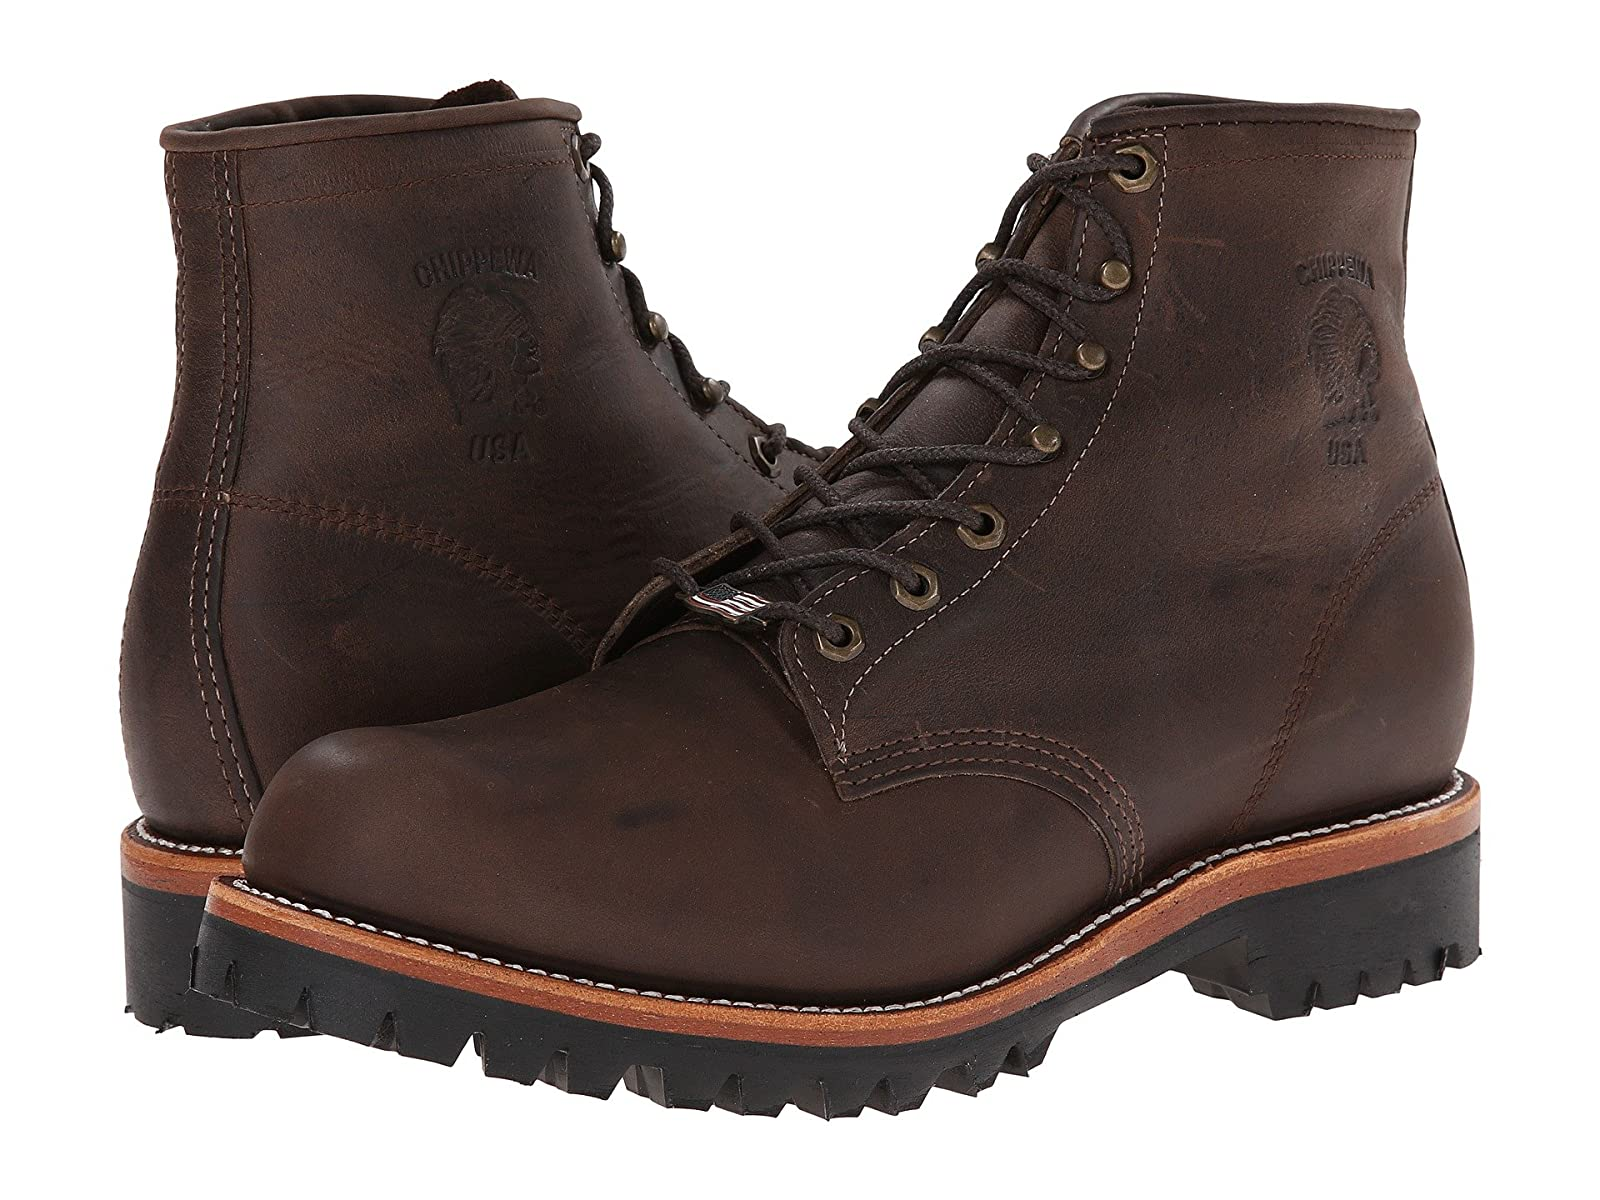 "Chippewa 6"" Engineer Lace Up BootSelling fashionable and eye-catching shoes"